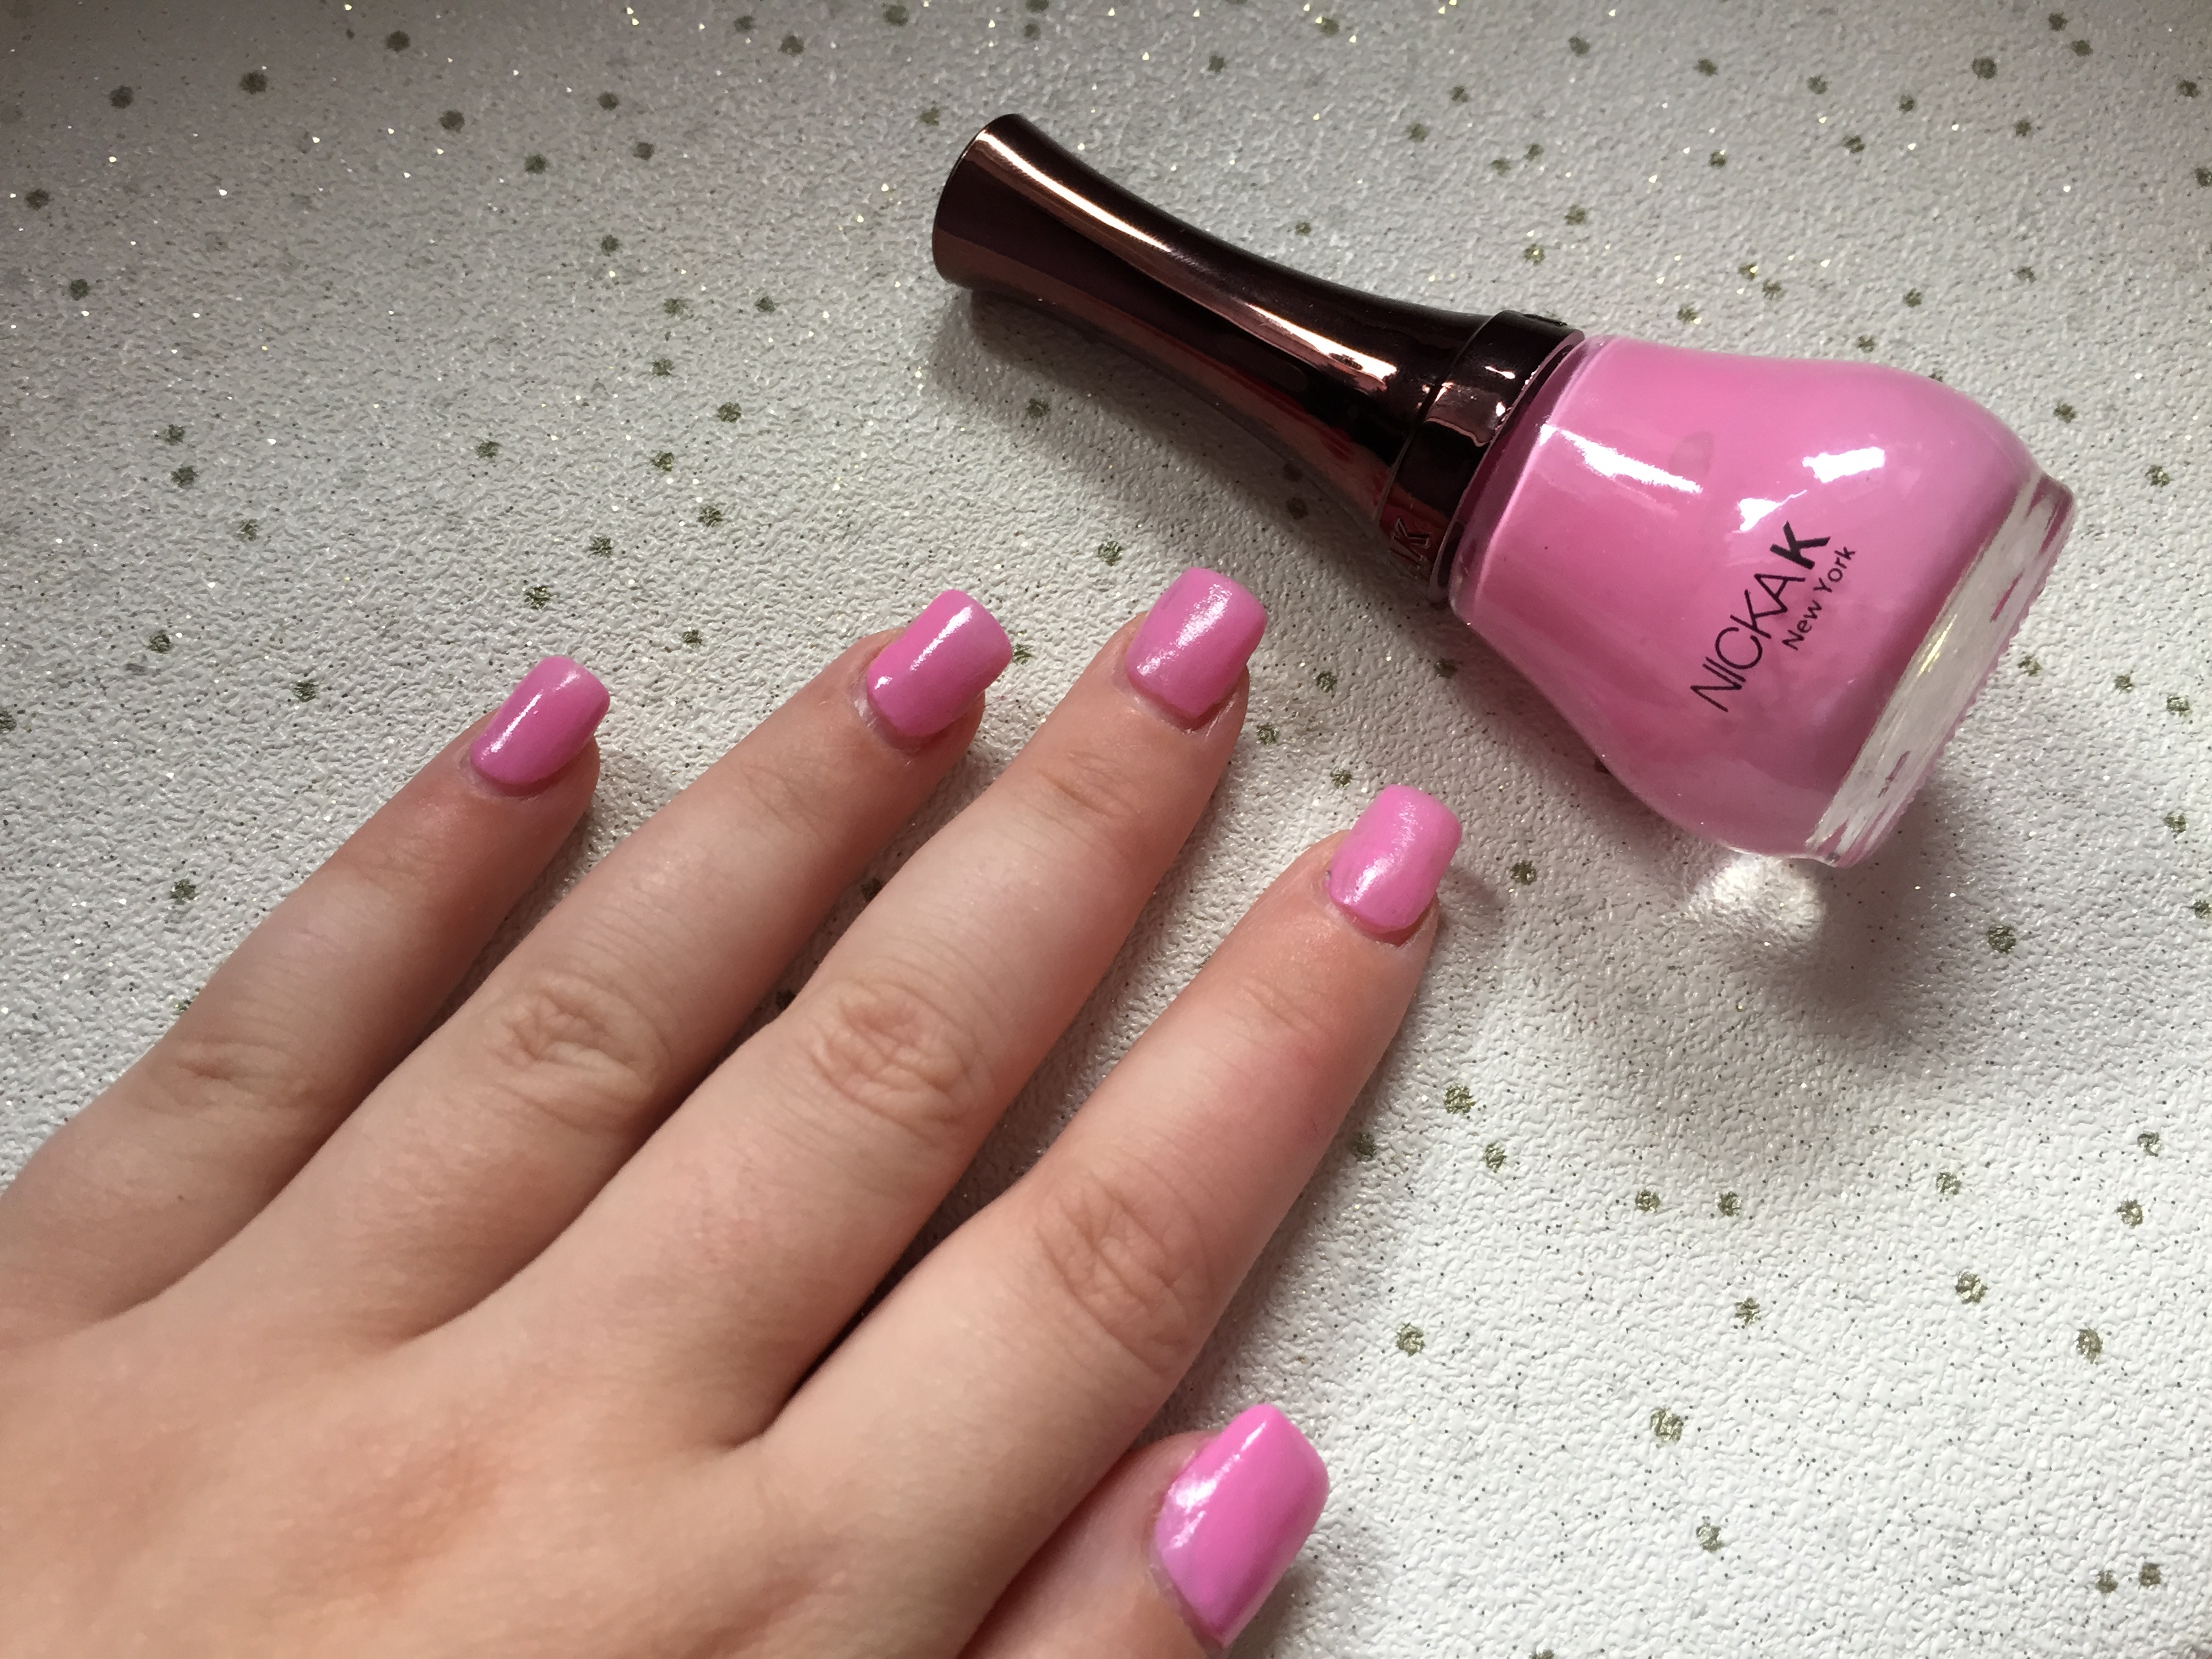 Nicka K Nail Polish Review – Paige Helen